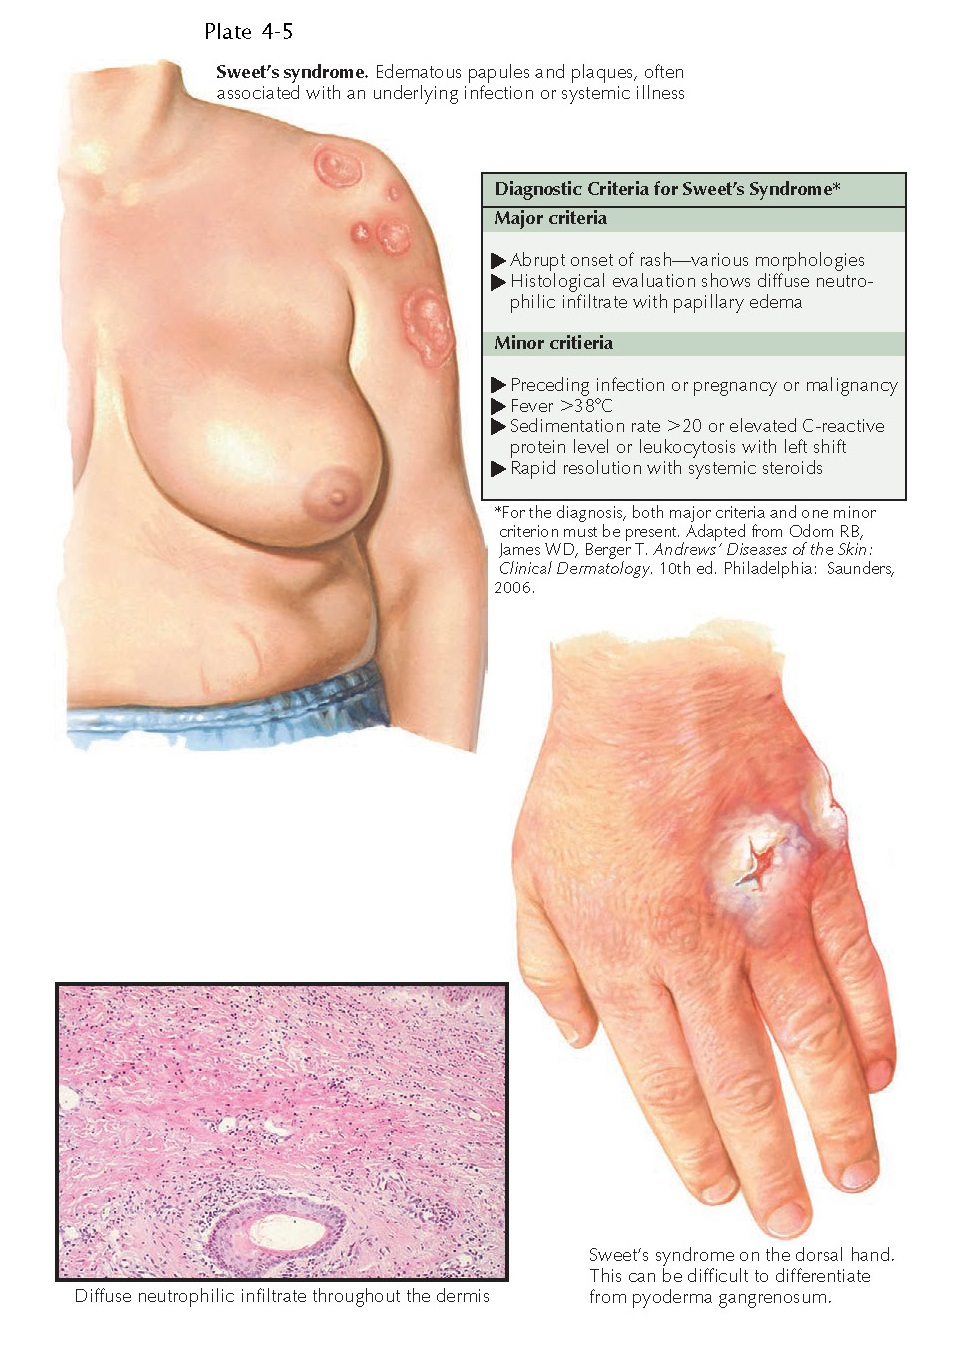 ACUTE FEBRILE NEUTROPHILIC DERMATOSIS (SWEET'S SYNDROME)